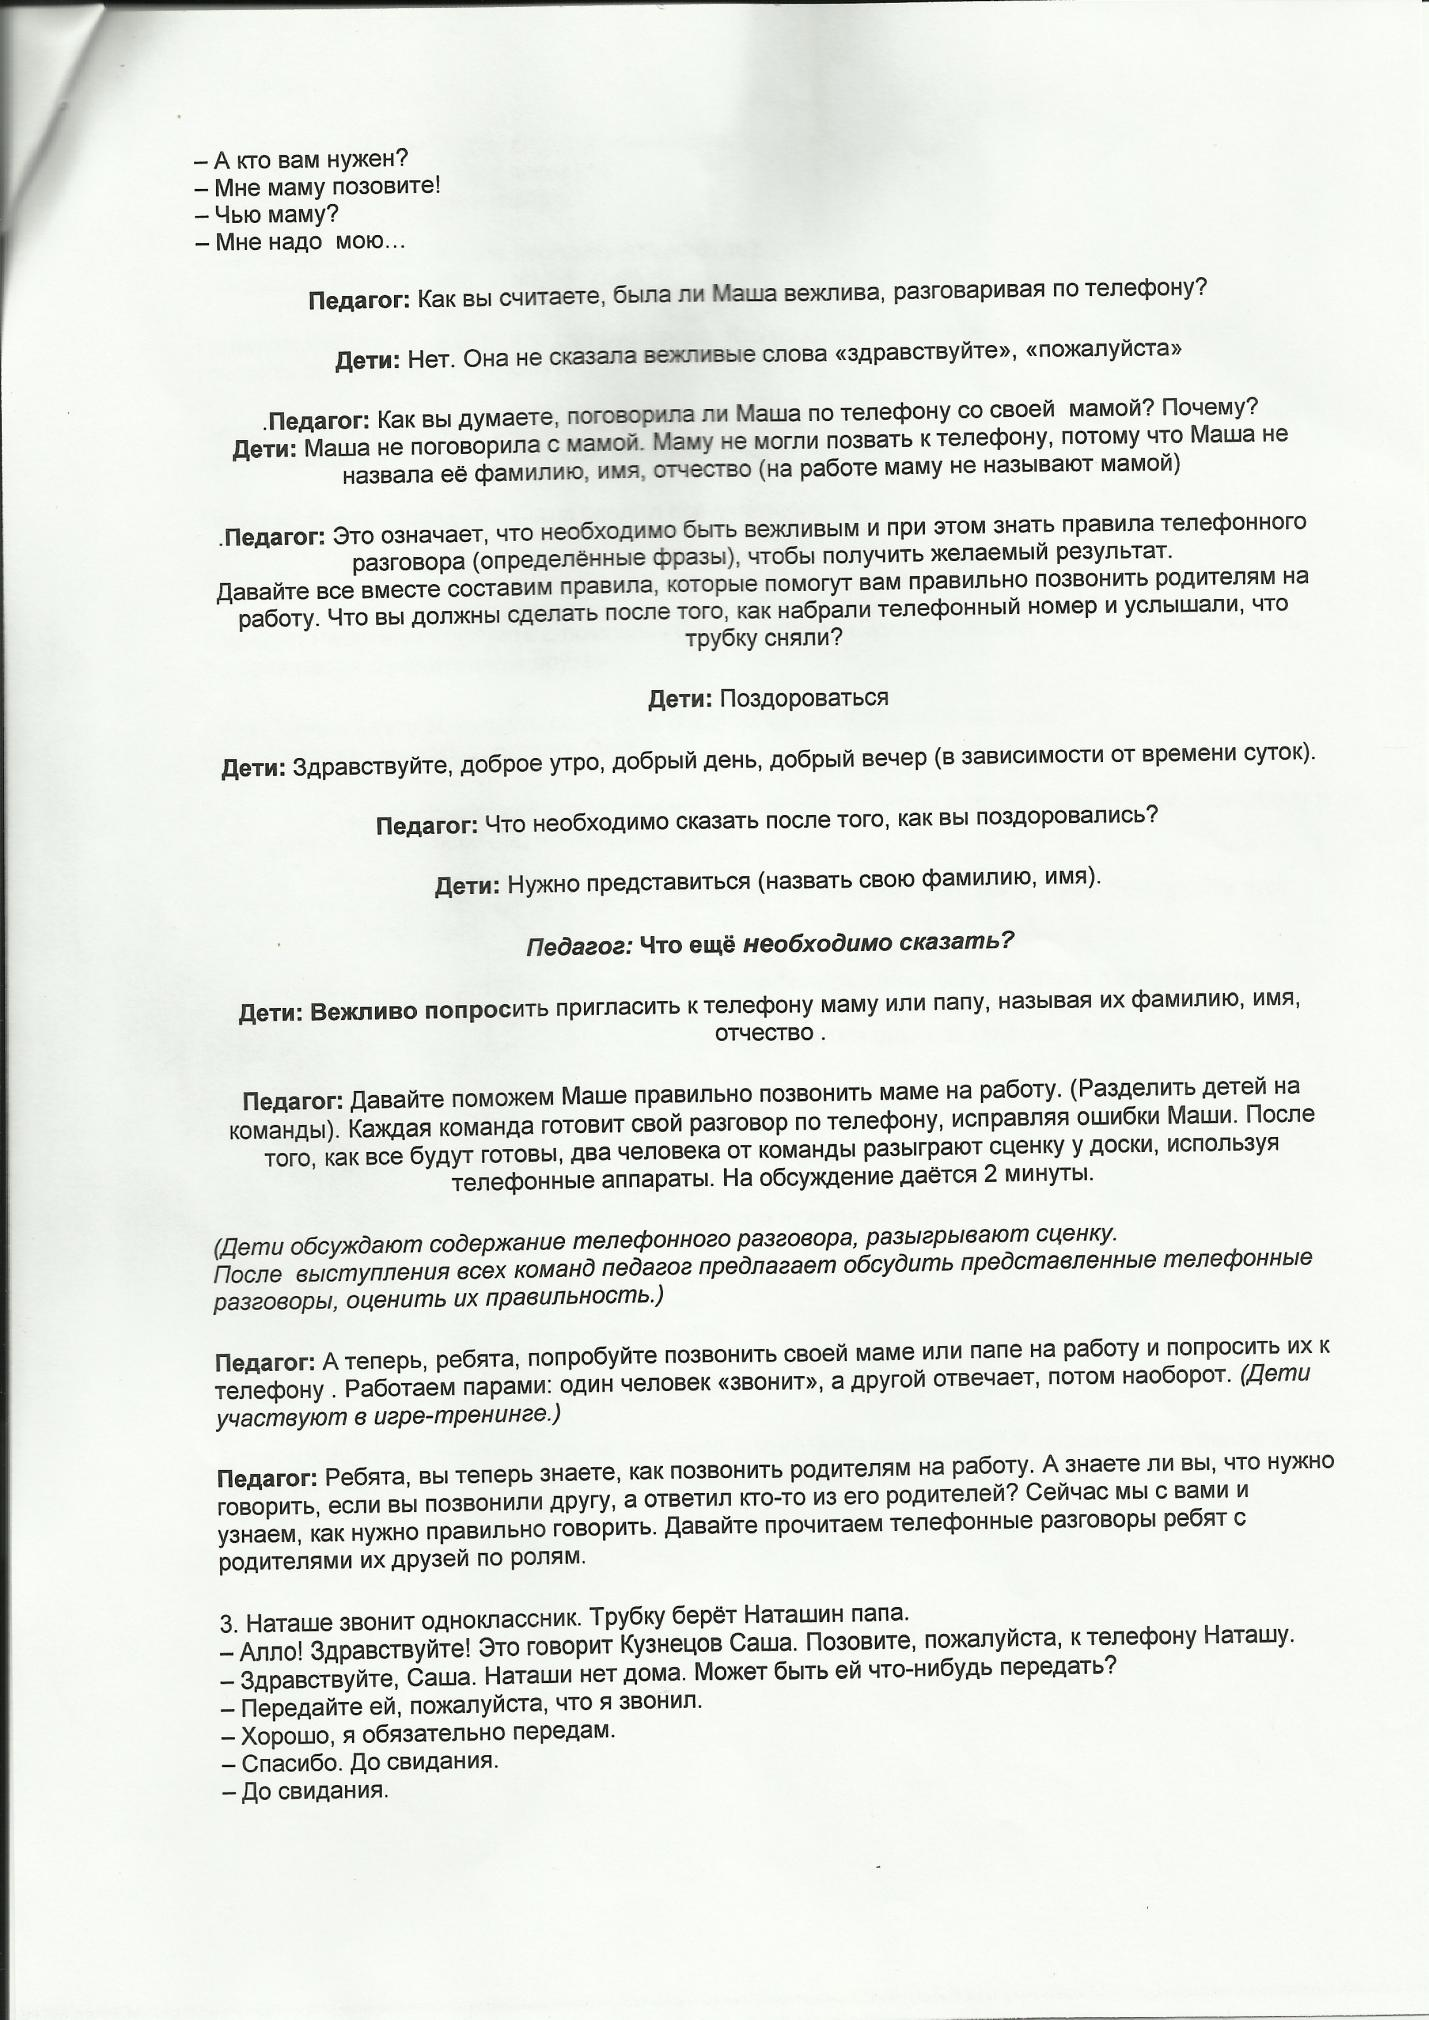 C:\Documents and Settings\User\Рабочий стол\мама\скан\Scan3.tif